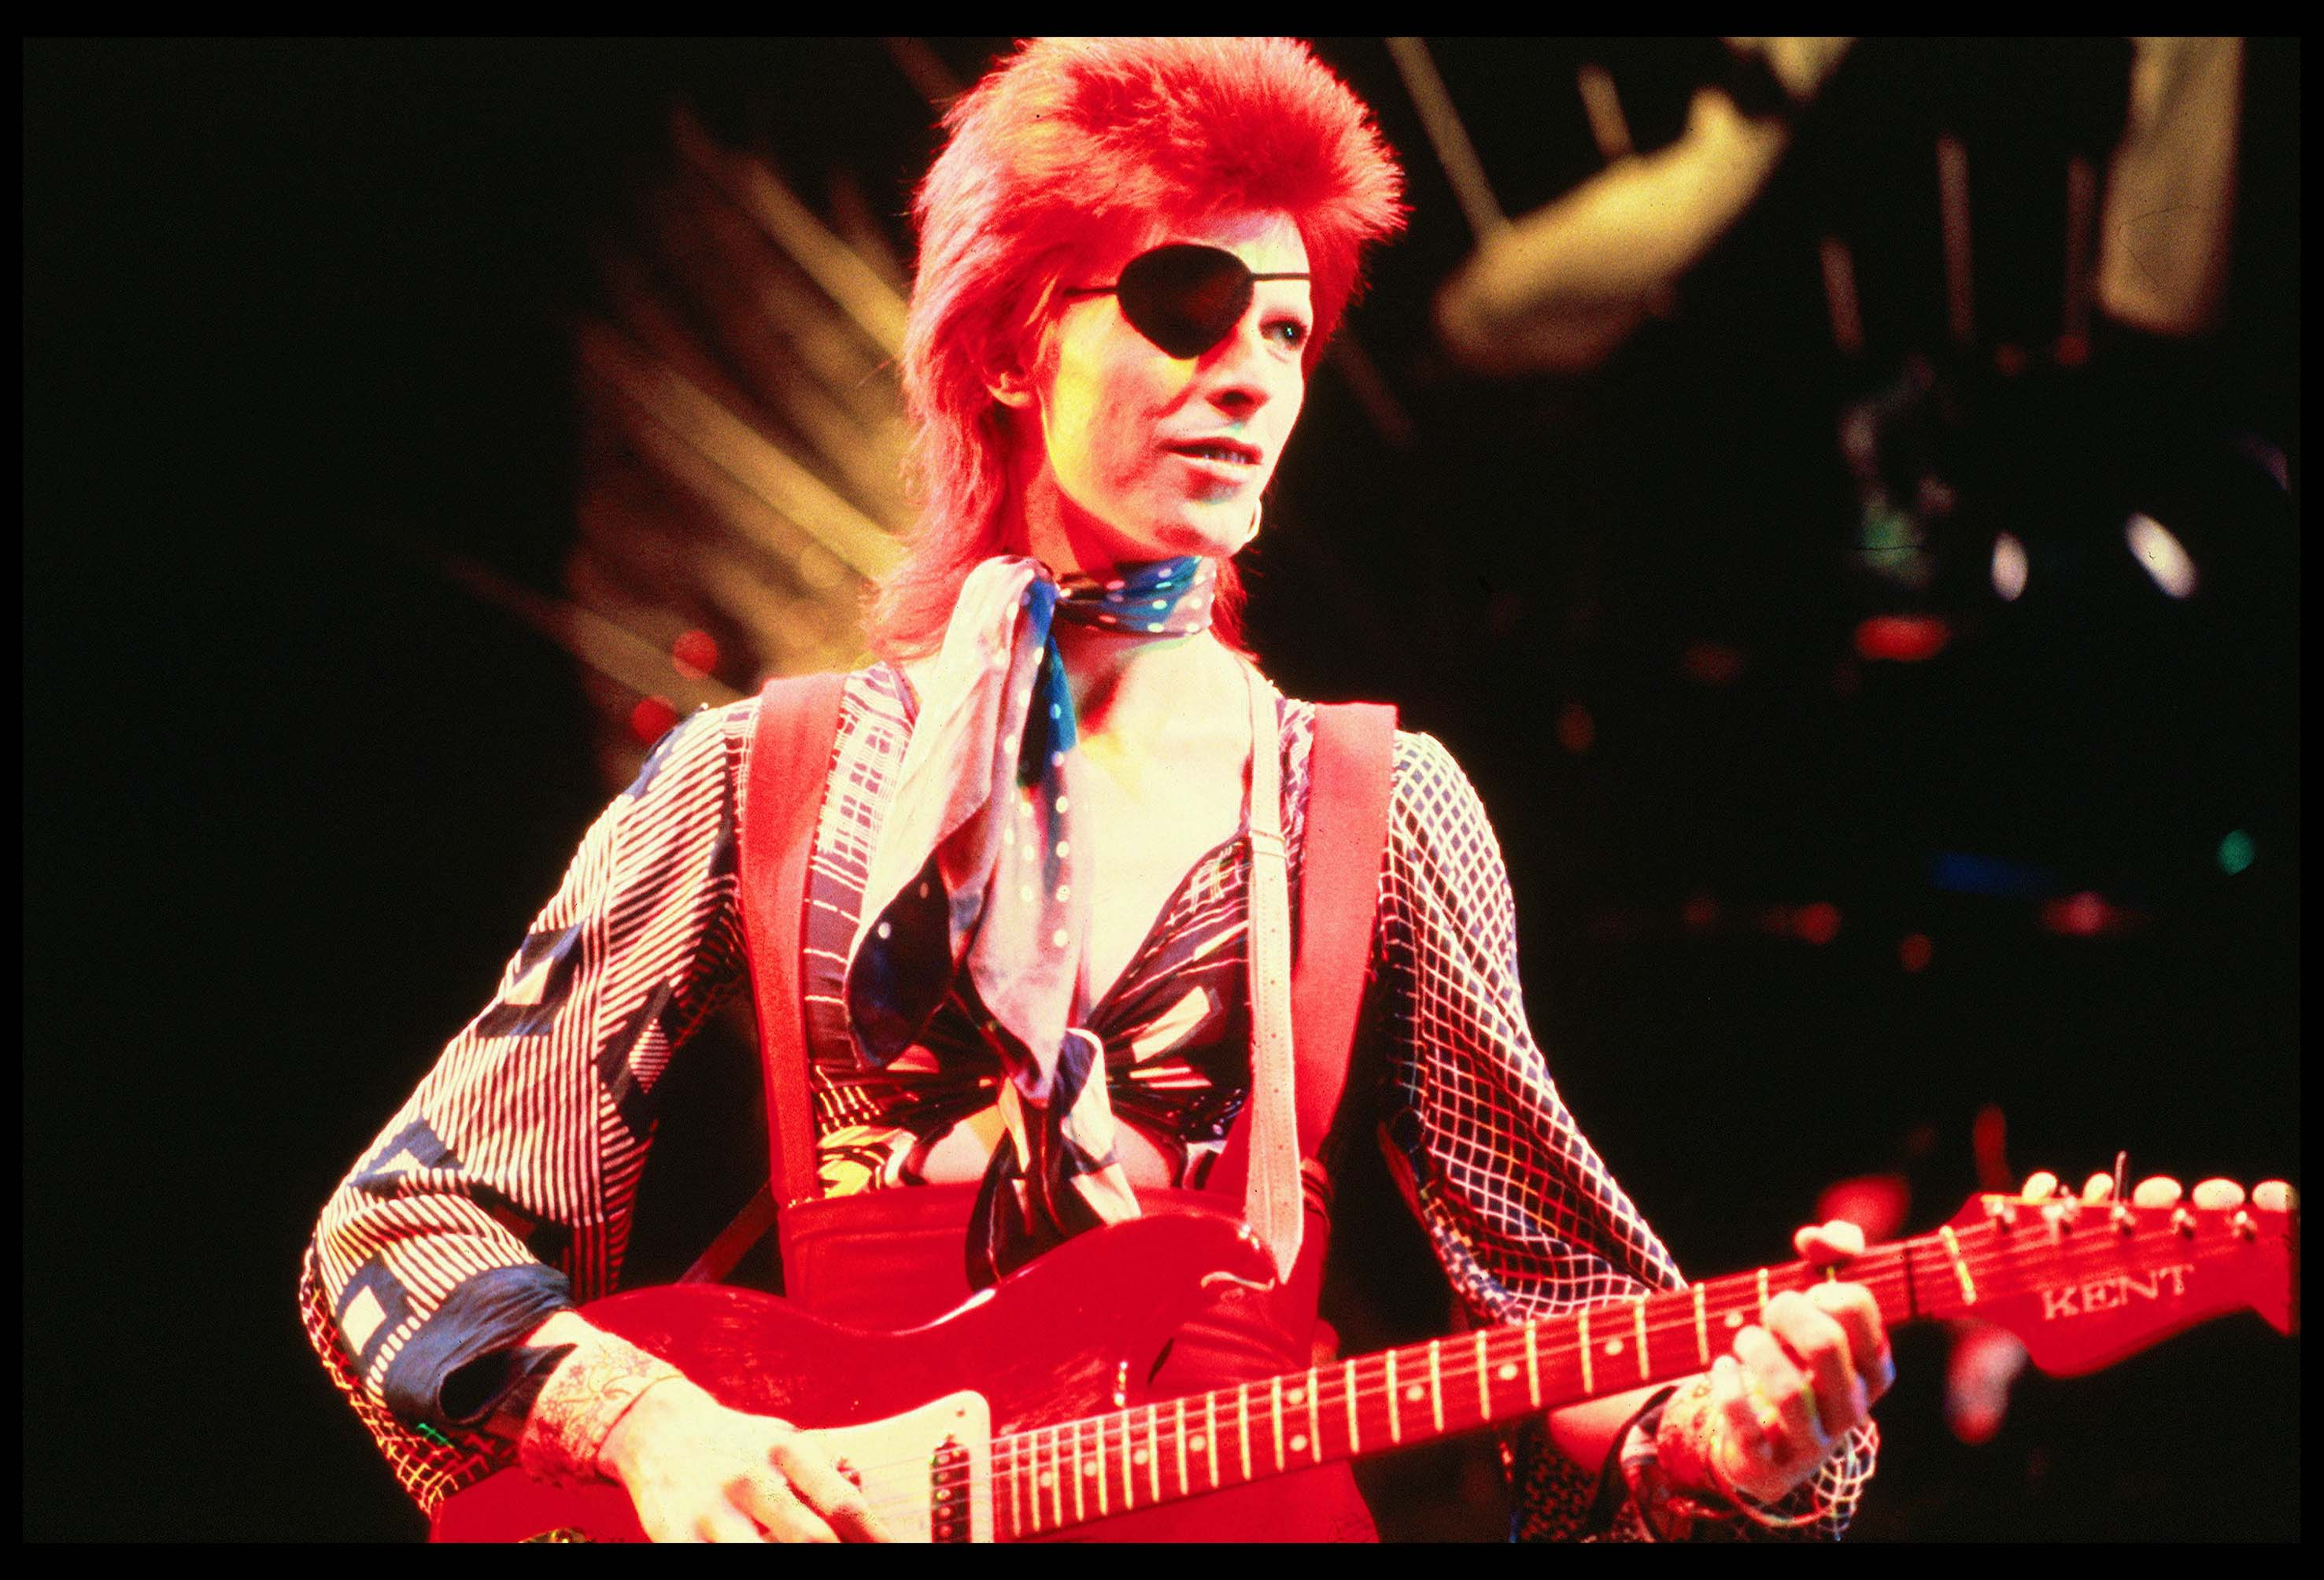 Thanks, Starman: Why David Bowie Was the Greatest Rock Star Ever